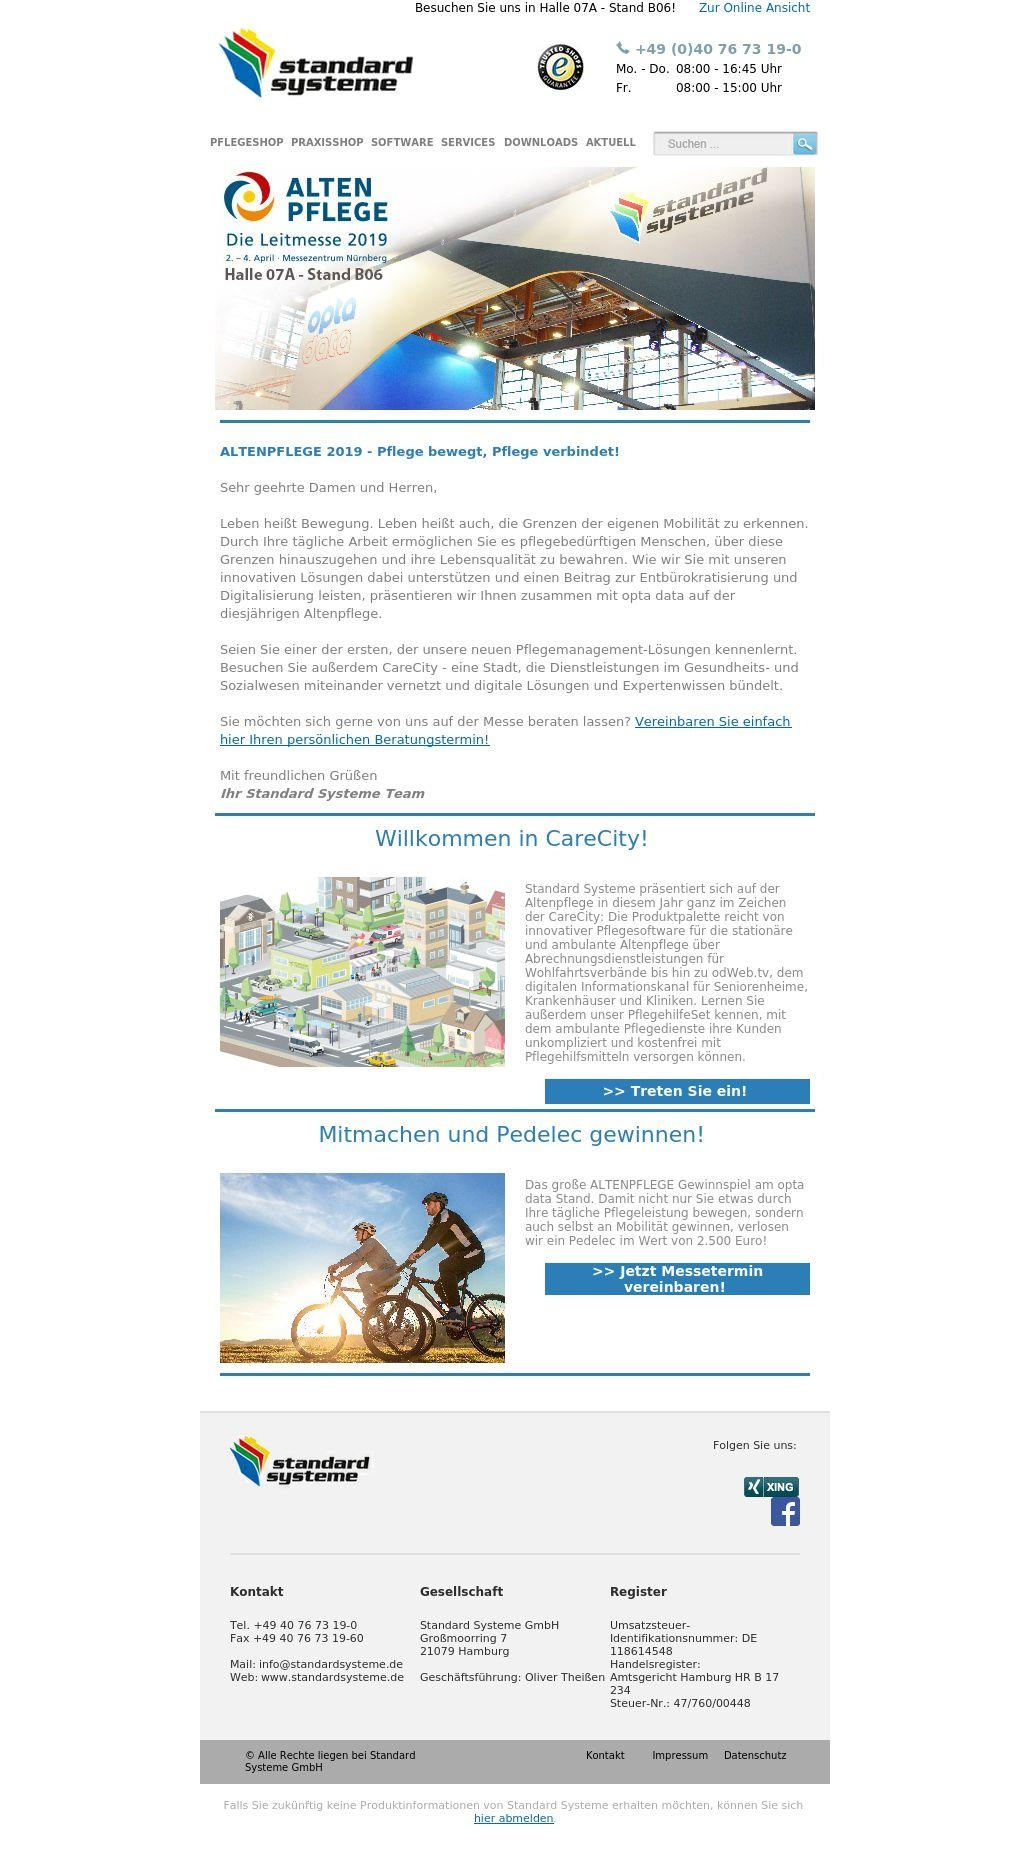 Mobile Pflege - Messe-News 03/19